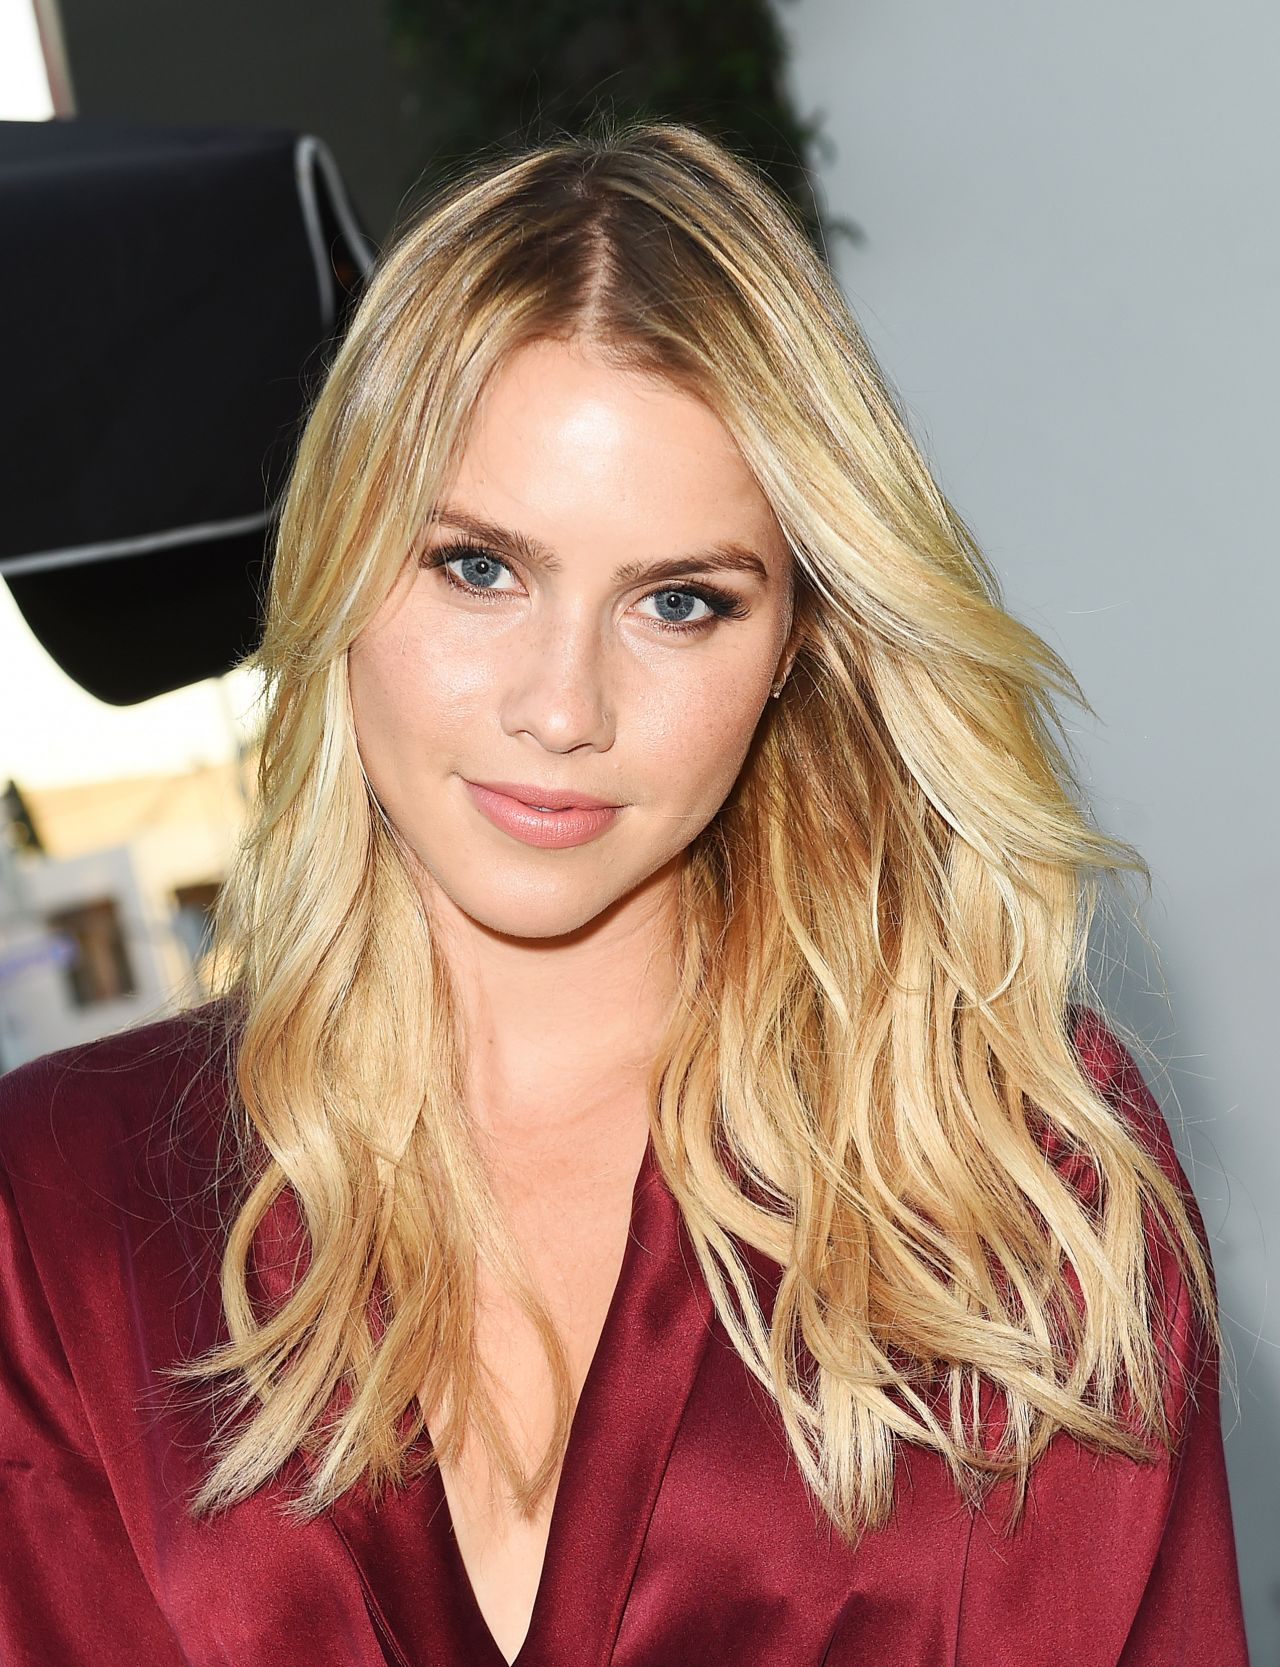 Images Claire Holt nude (34 photos), Pussy, Cleavage, Twitter, cleavage 2019